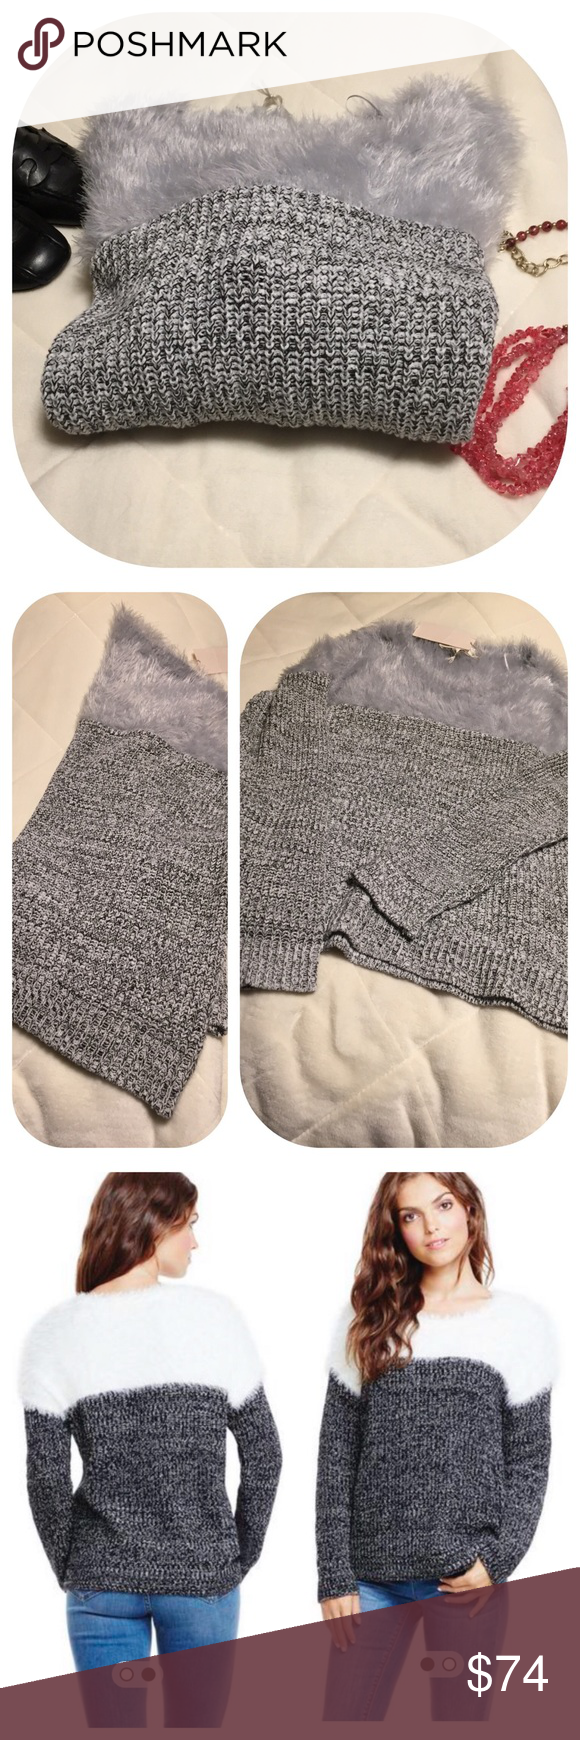 """Two by Vince Camuto Mixed Media Sweater Light gray Eyelash knit on the top, marled white and black rib stitch knit on the bottom. Round neck. Upper body 100% nylon, lower body and sleeves 70% cotton 30% acrylic. Hand wash cold and lay flat to dry. All measurements are approximate laying flat, bust 23"""" length 24"""". Two by Vince Camuto Sweaters Crew & Scoop Necks"""